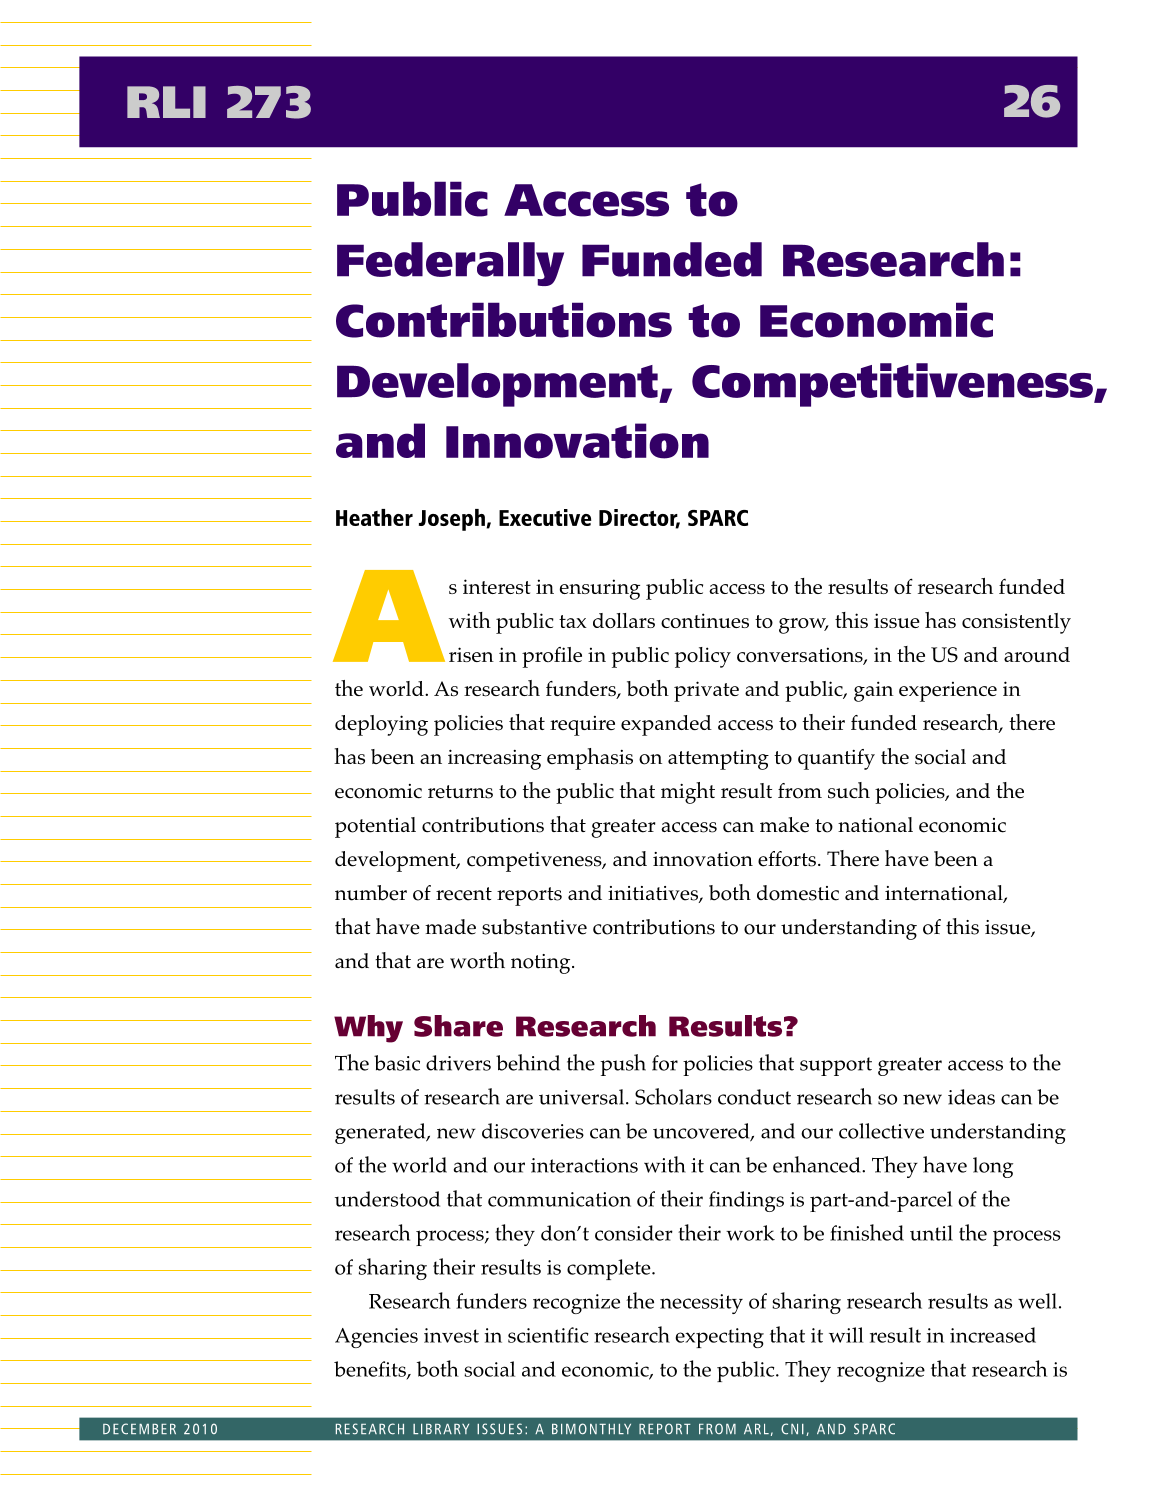 Research Library Issues, no. 273 (Dec. 2010) page 28